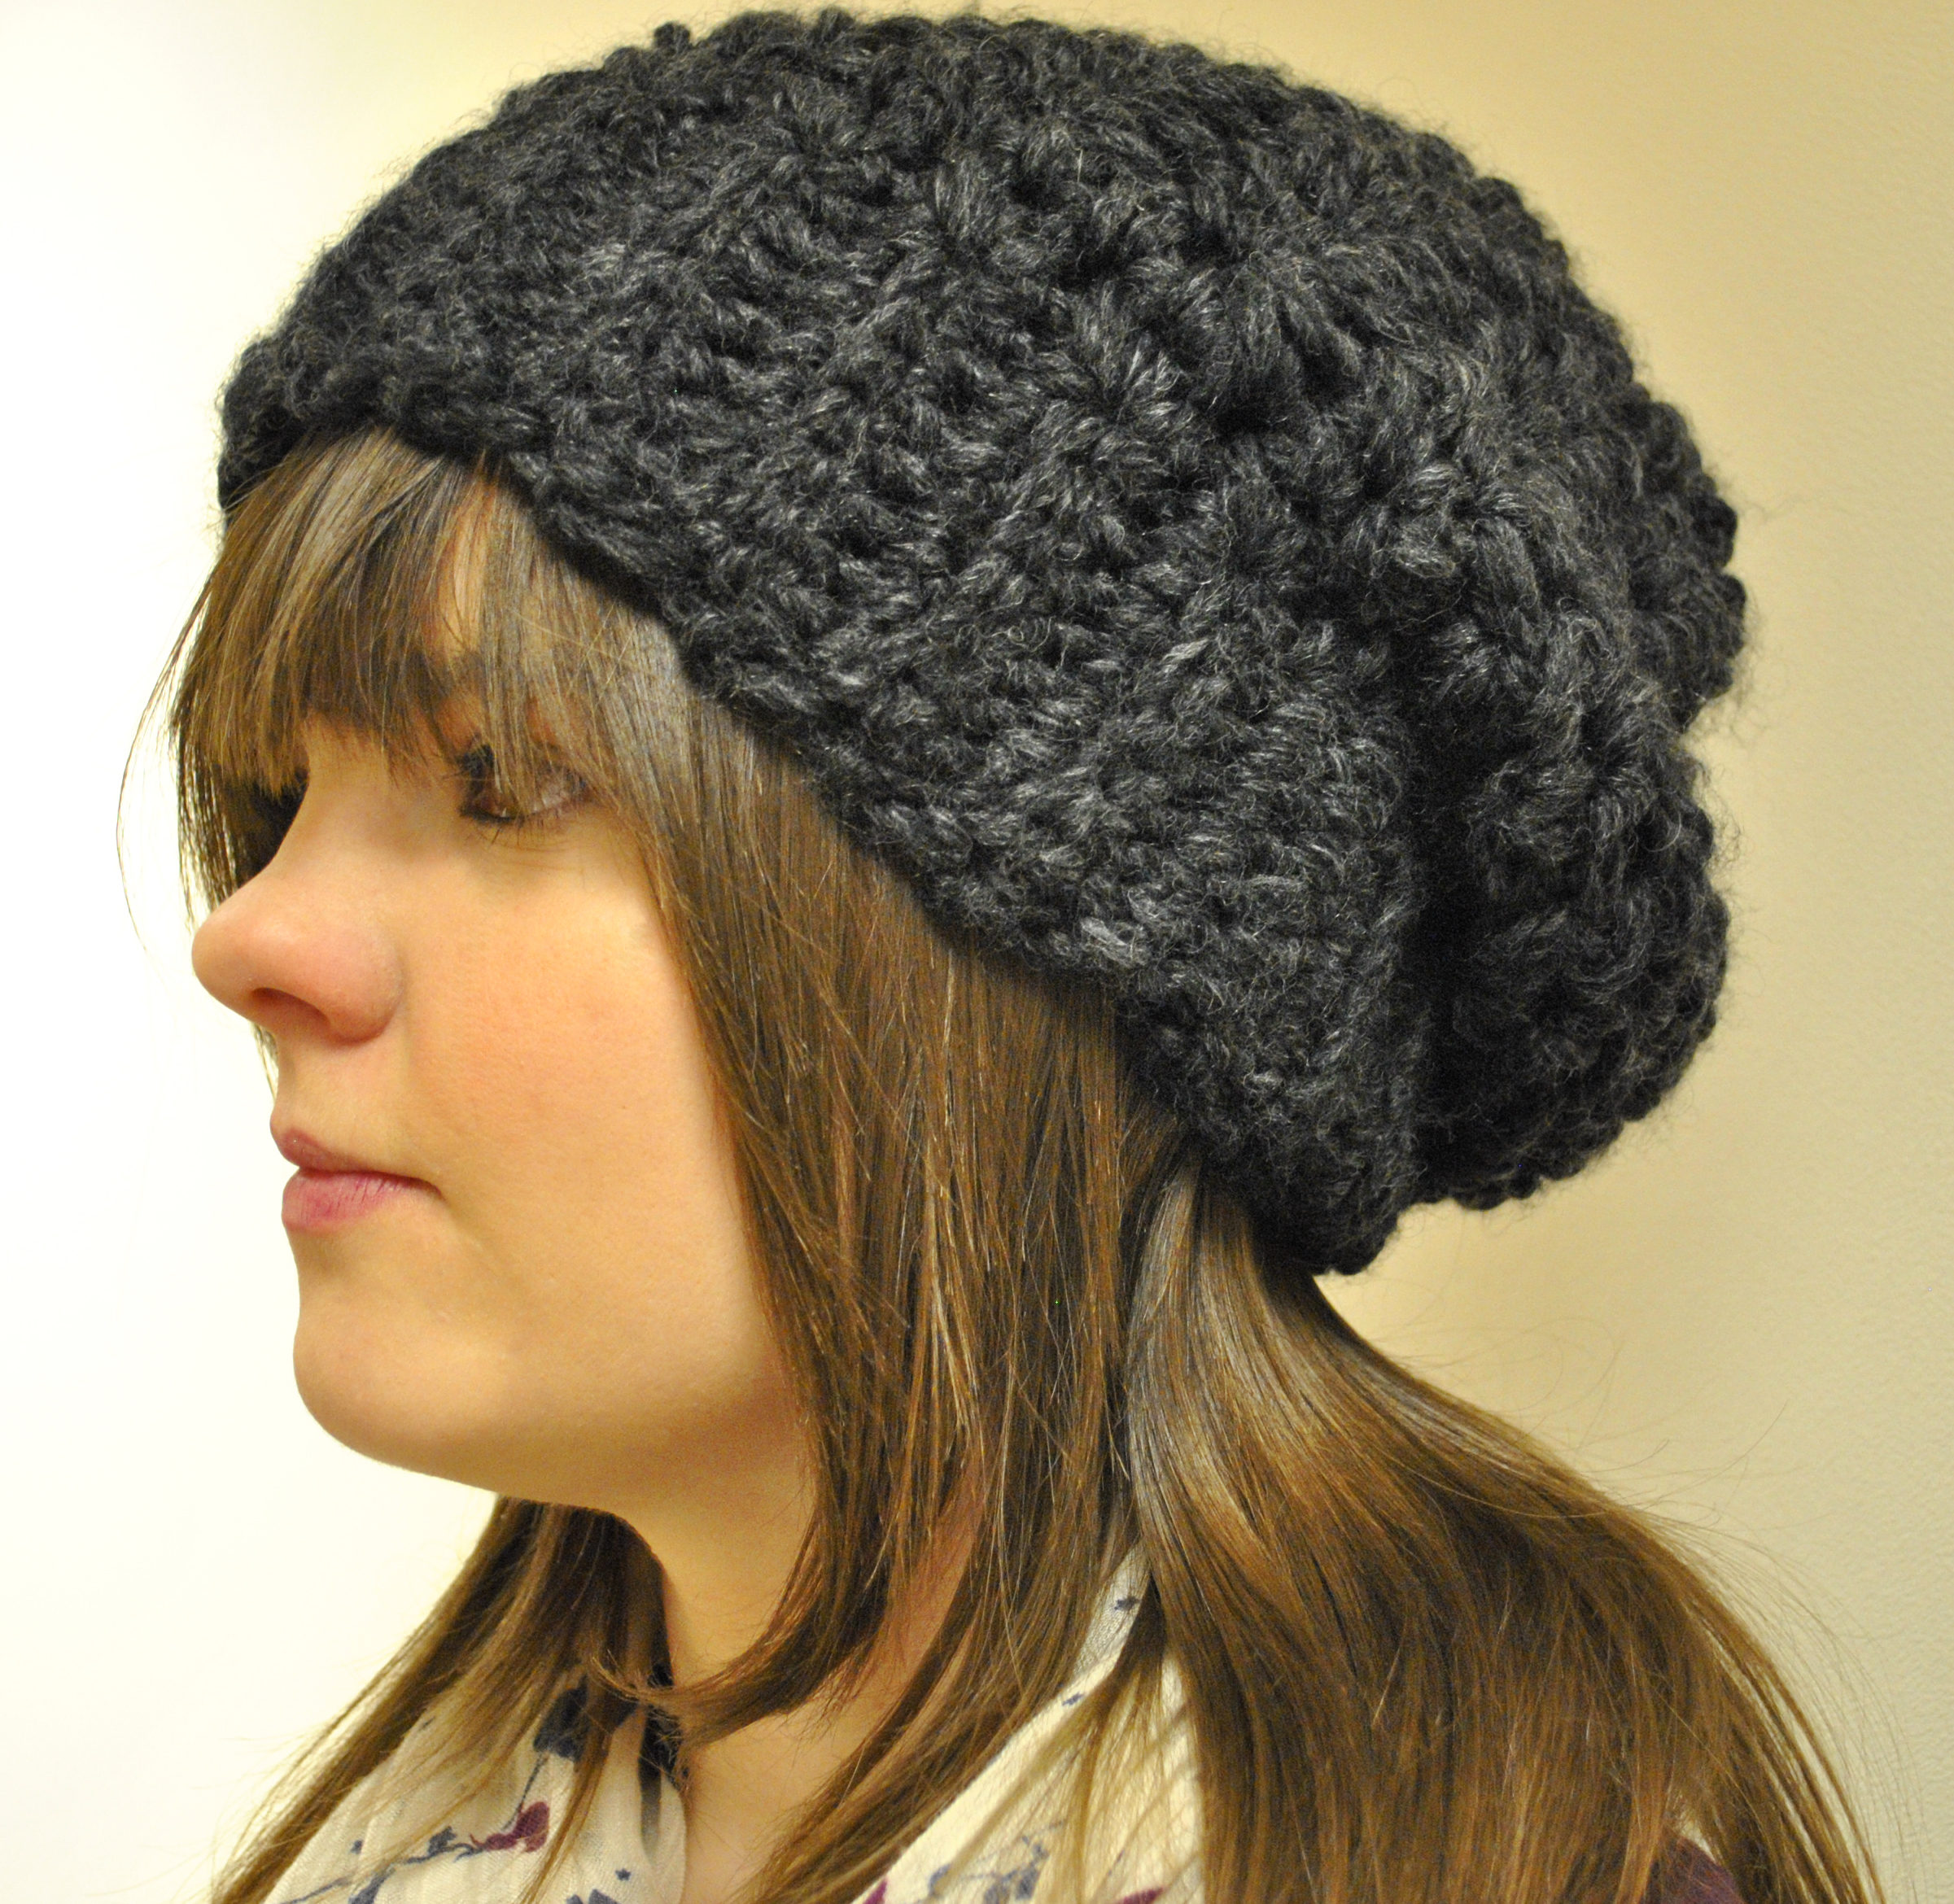 Crochet slouchy hat – FREE Pattern – Crochet and Tea – Blog about ... f11cb243e00